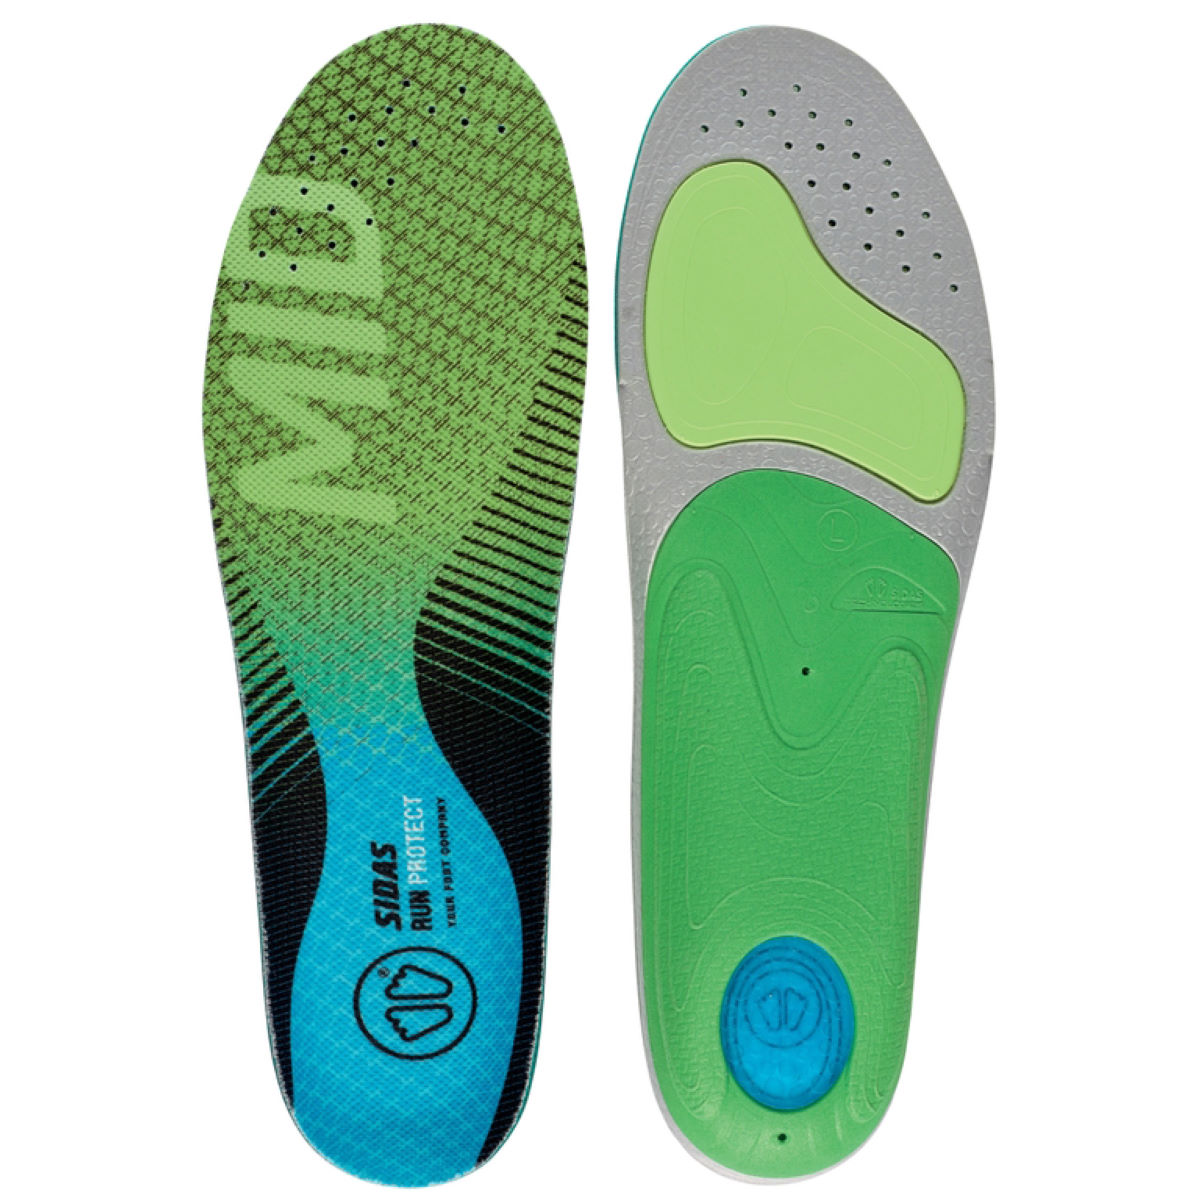 Sidas Sidas 3 Feet Mid Arch Run Protect Insole   Insoles